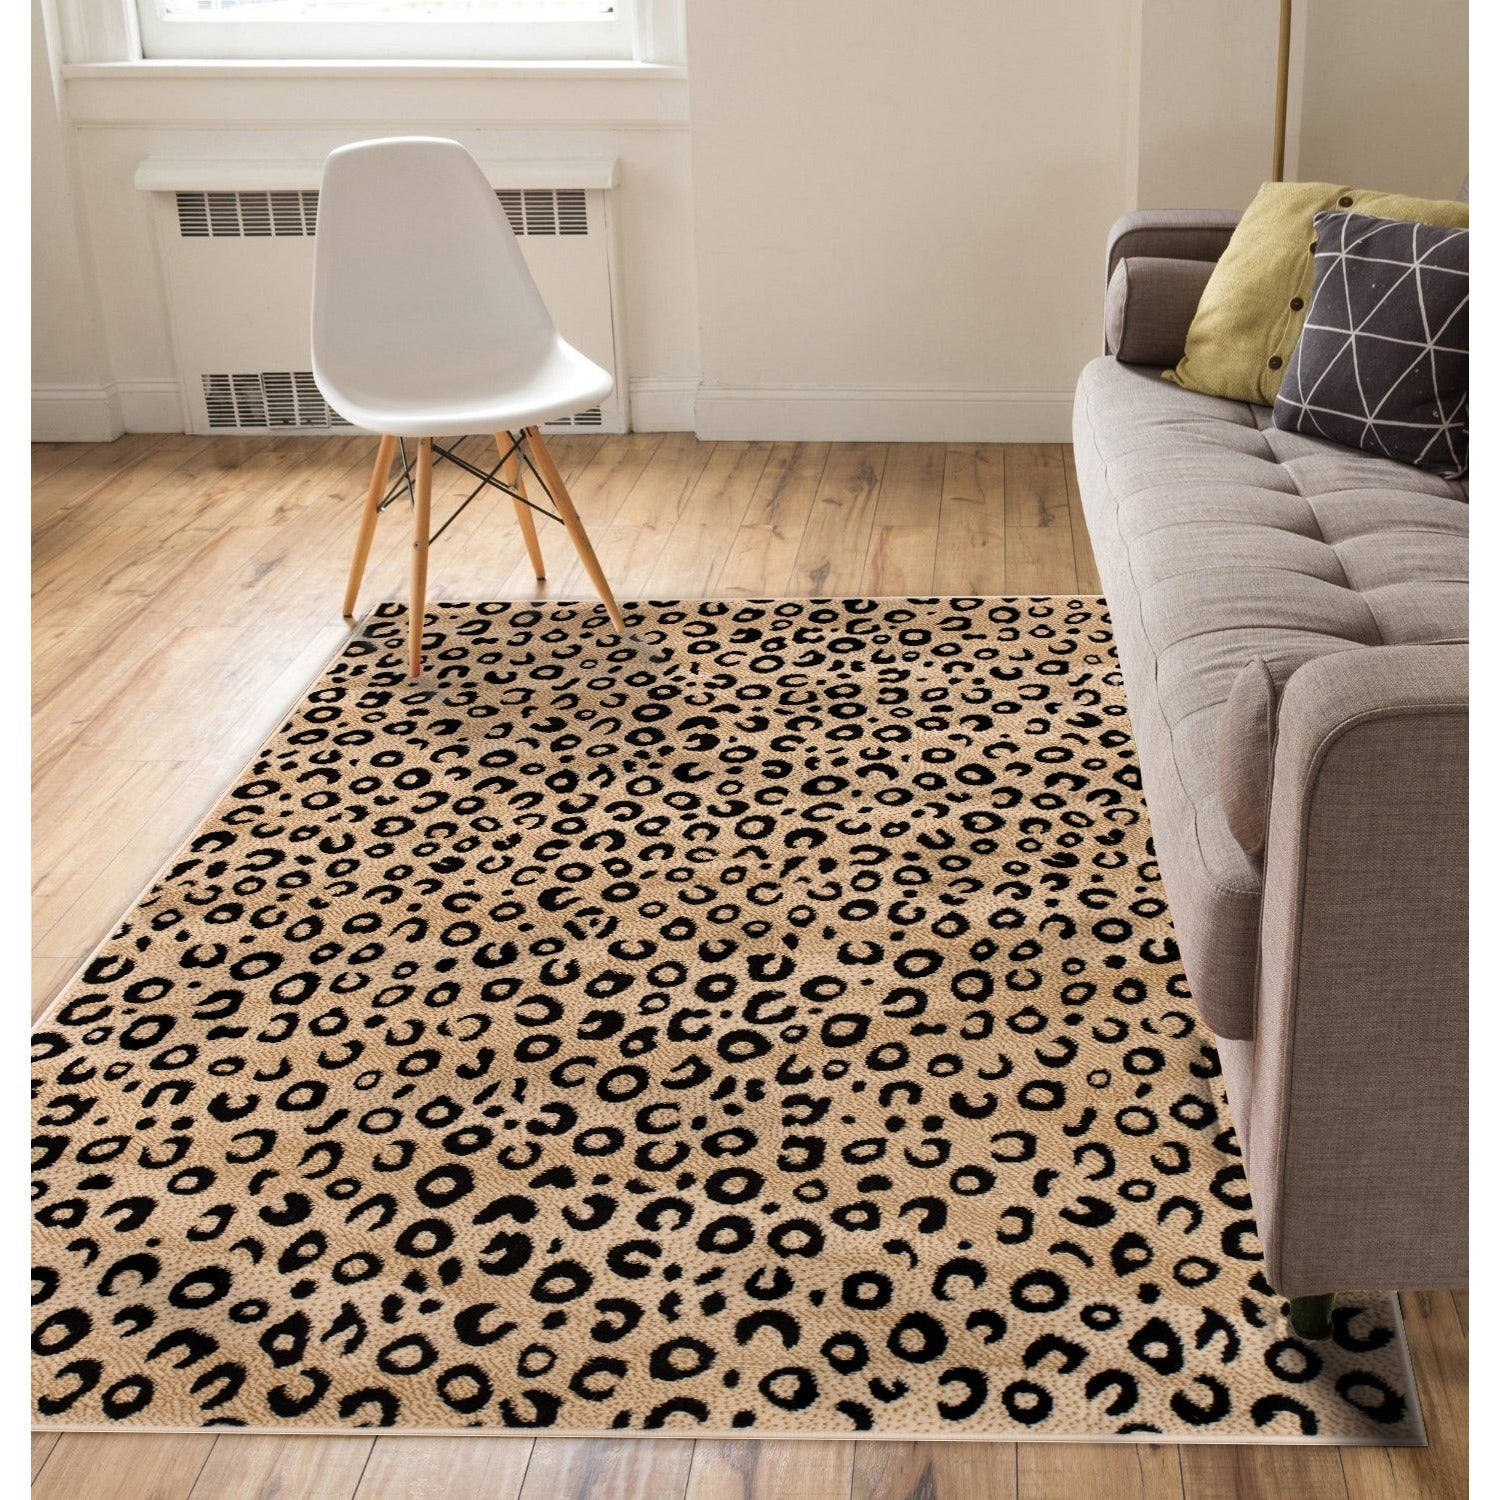 Well Woven Modern Leopard Animal Prints Black Ivory Area Rug - 5 x 72